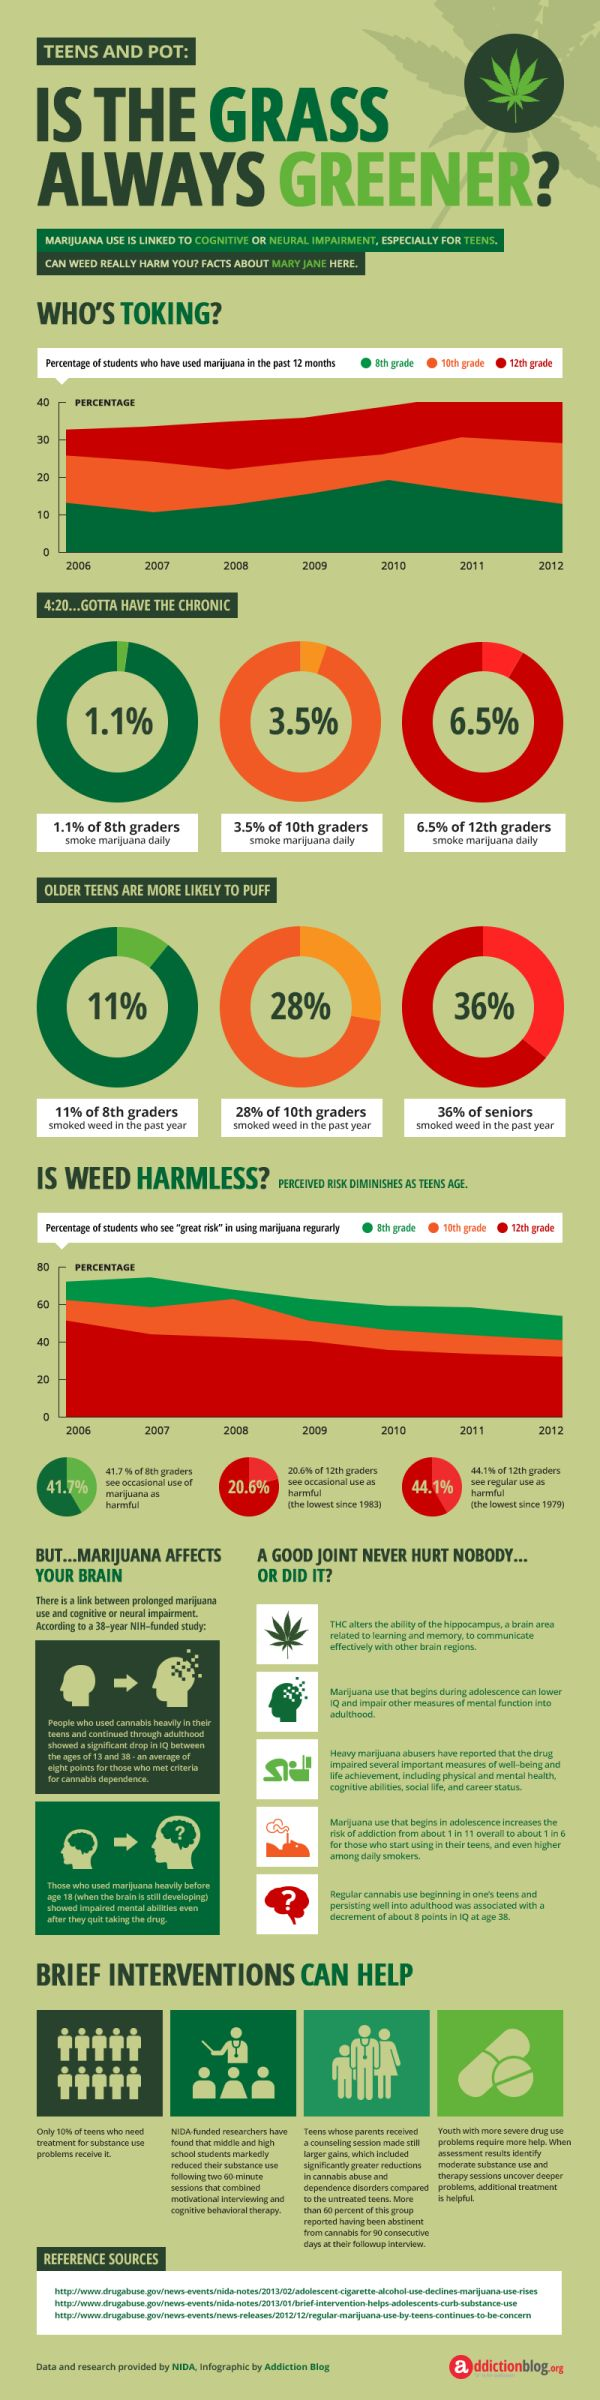 Teenage pot smoking statistics (INFOGRAPHIC) | Addiction Blog